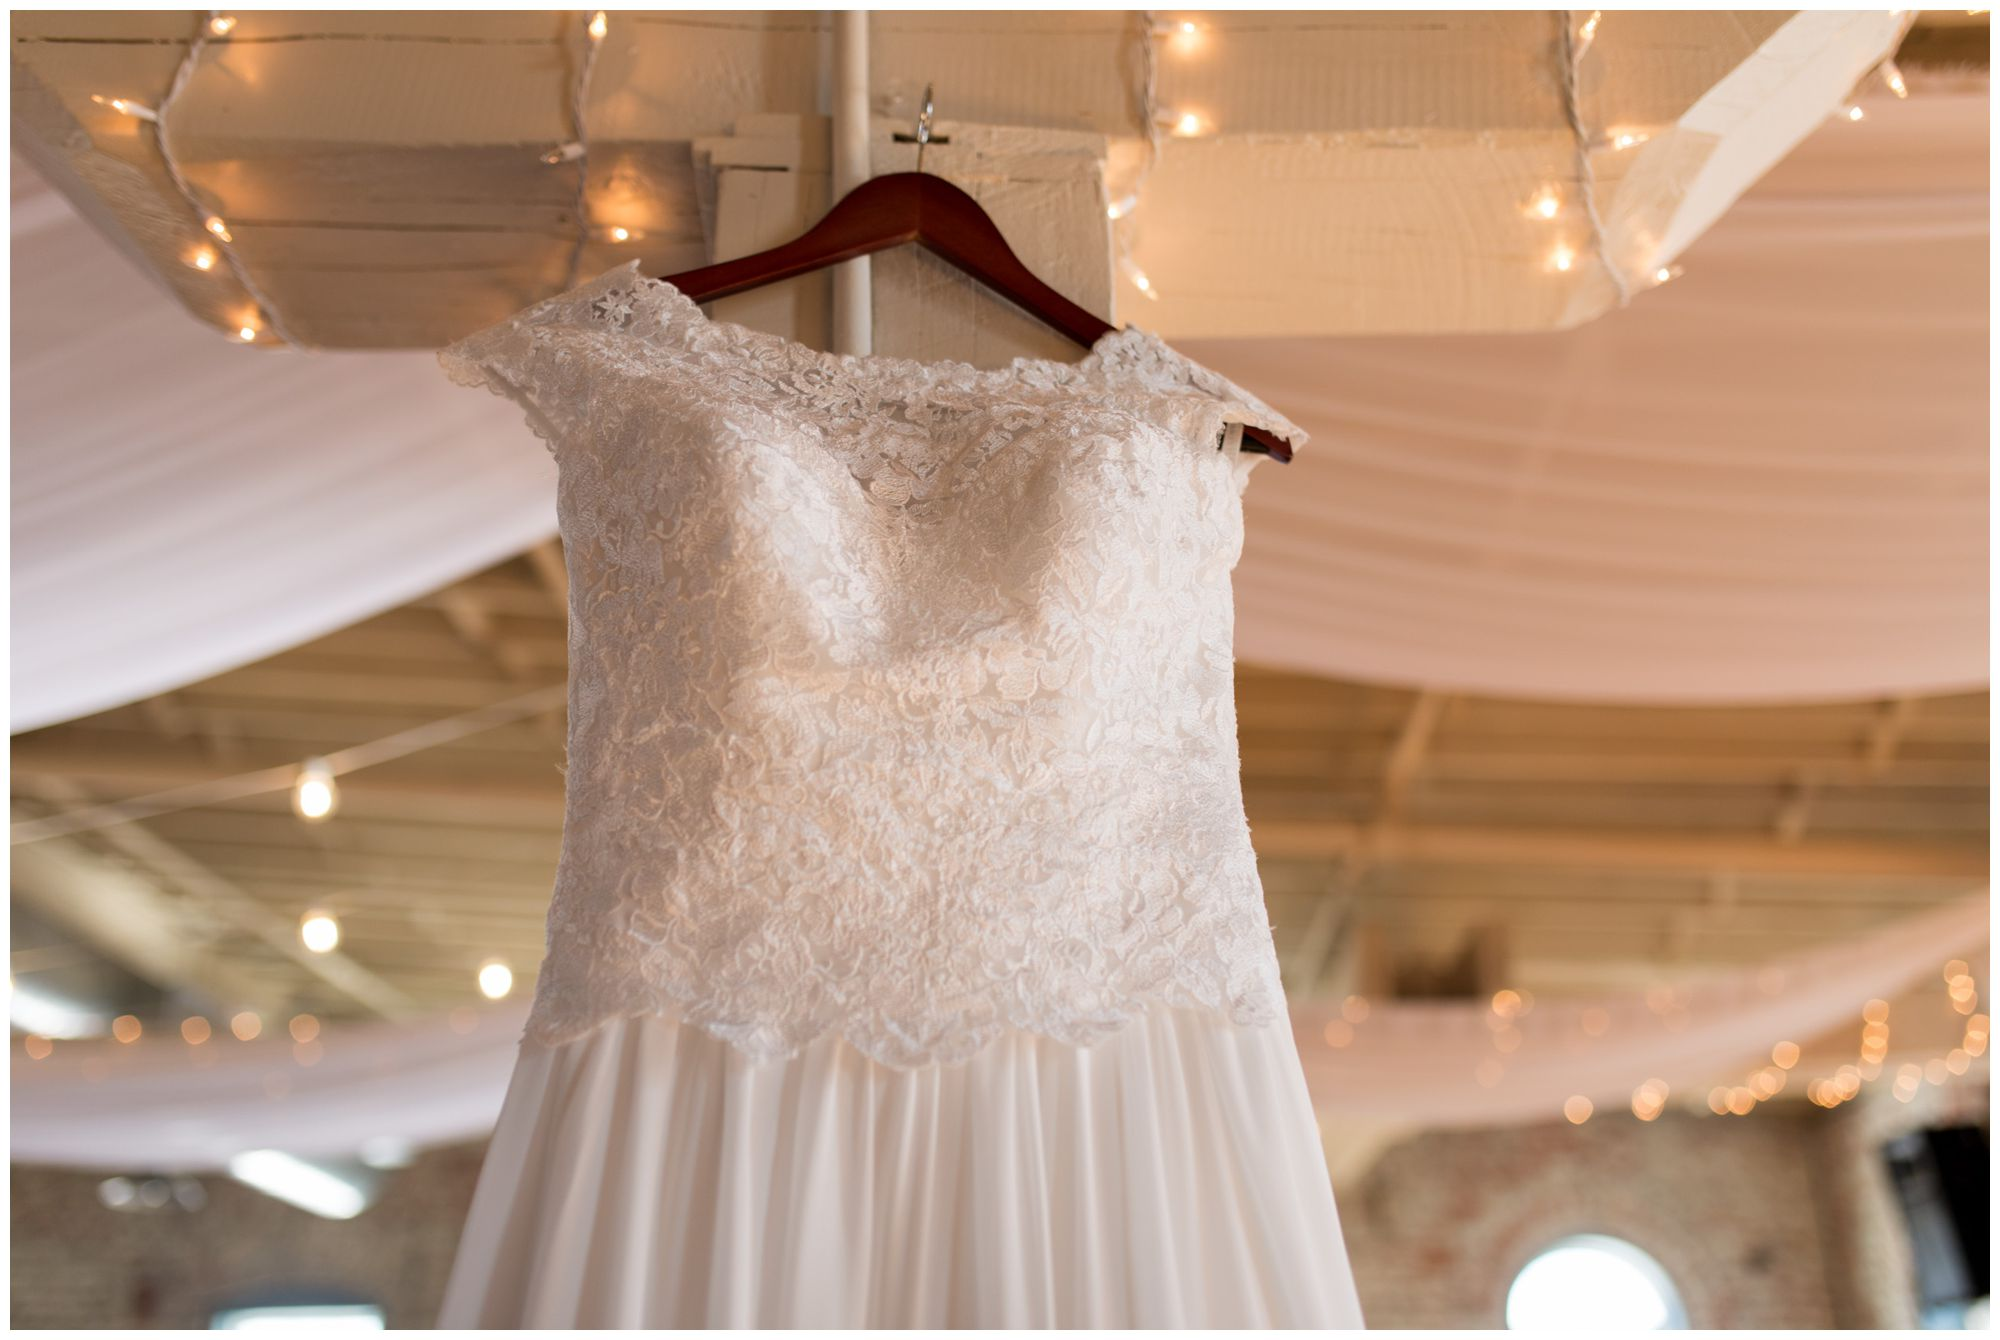 bride's dress hanging in The Gallery at Bread and Chocolate in Goshen